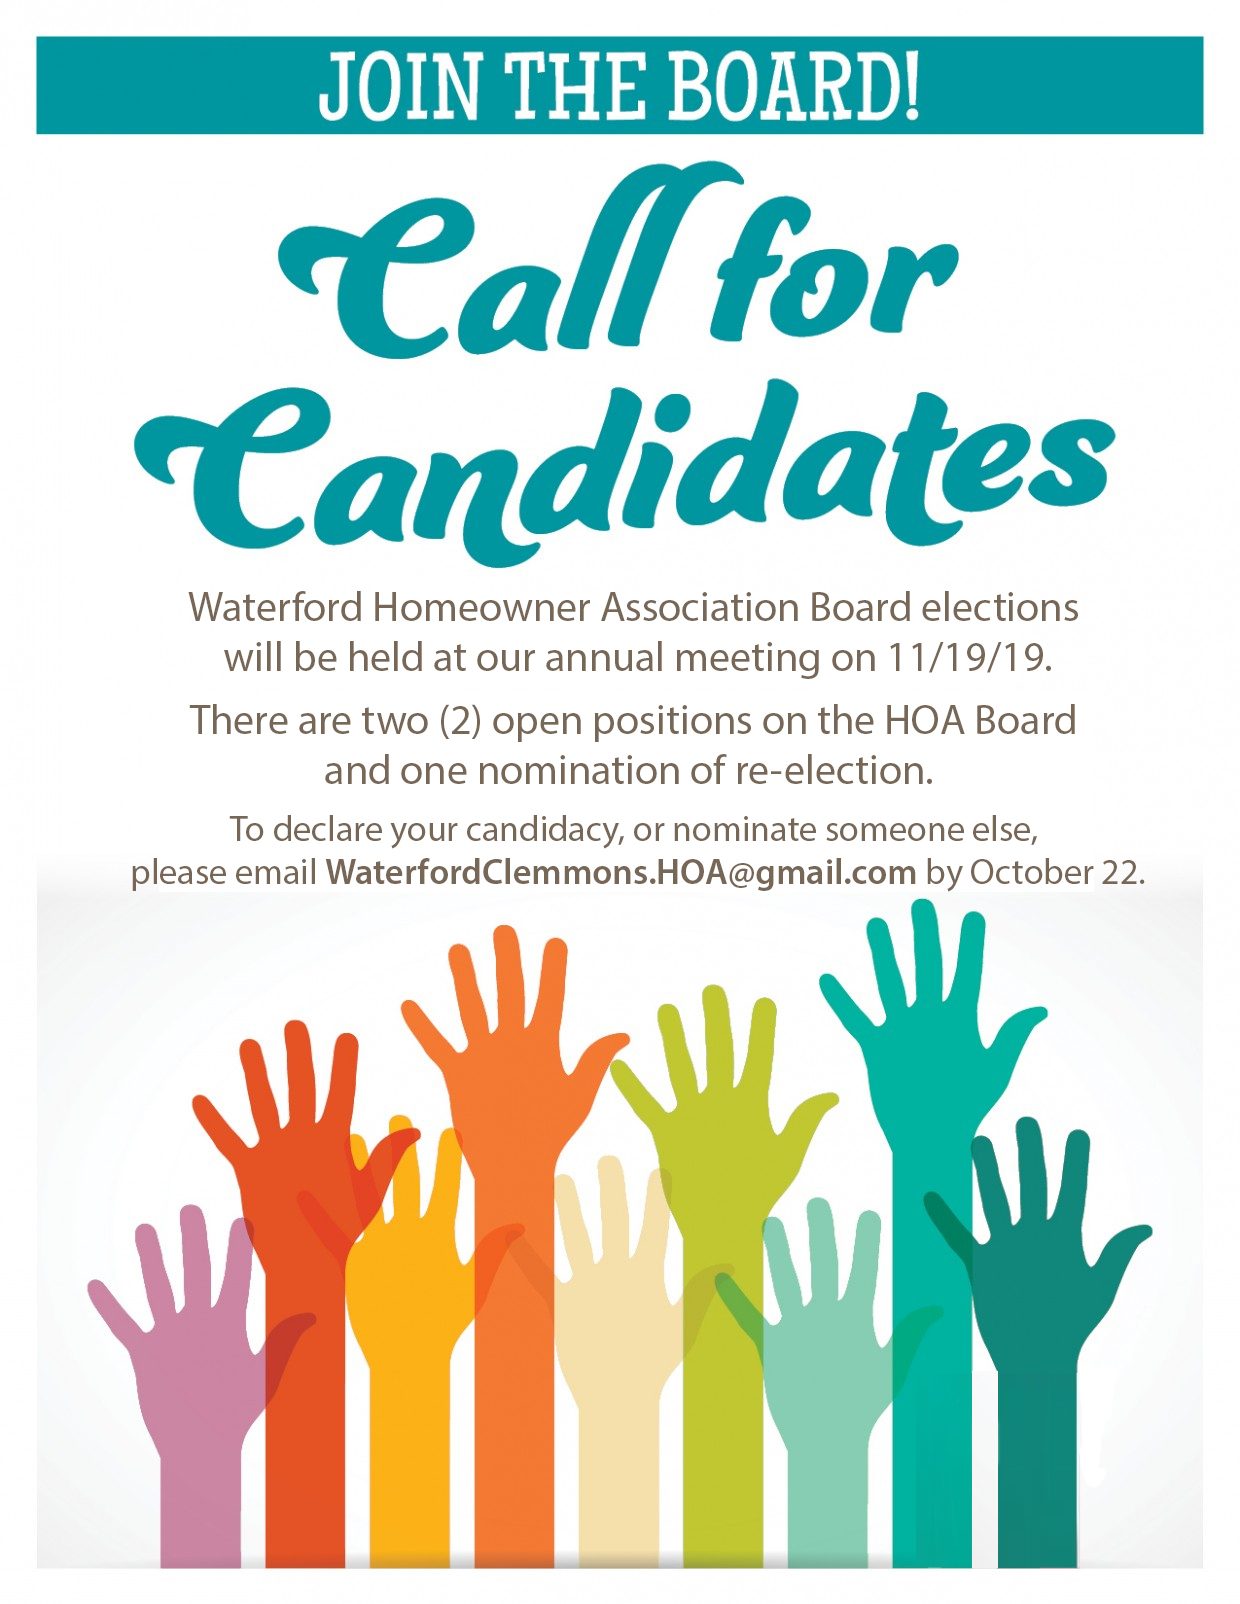 calling all candidates for 2 open board positions